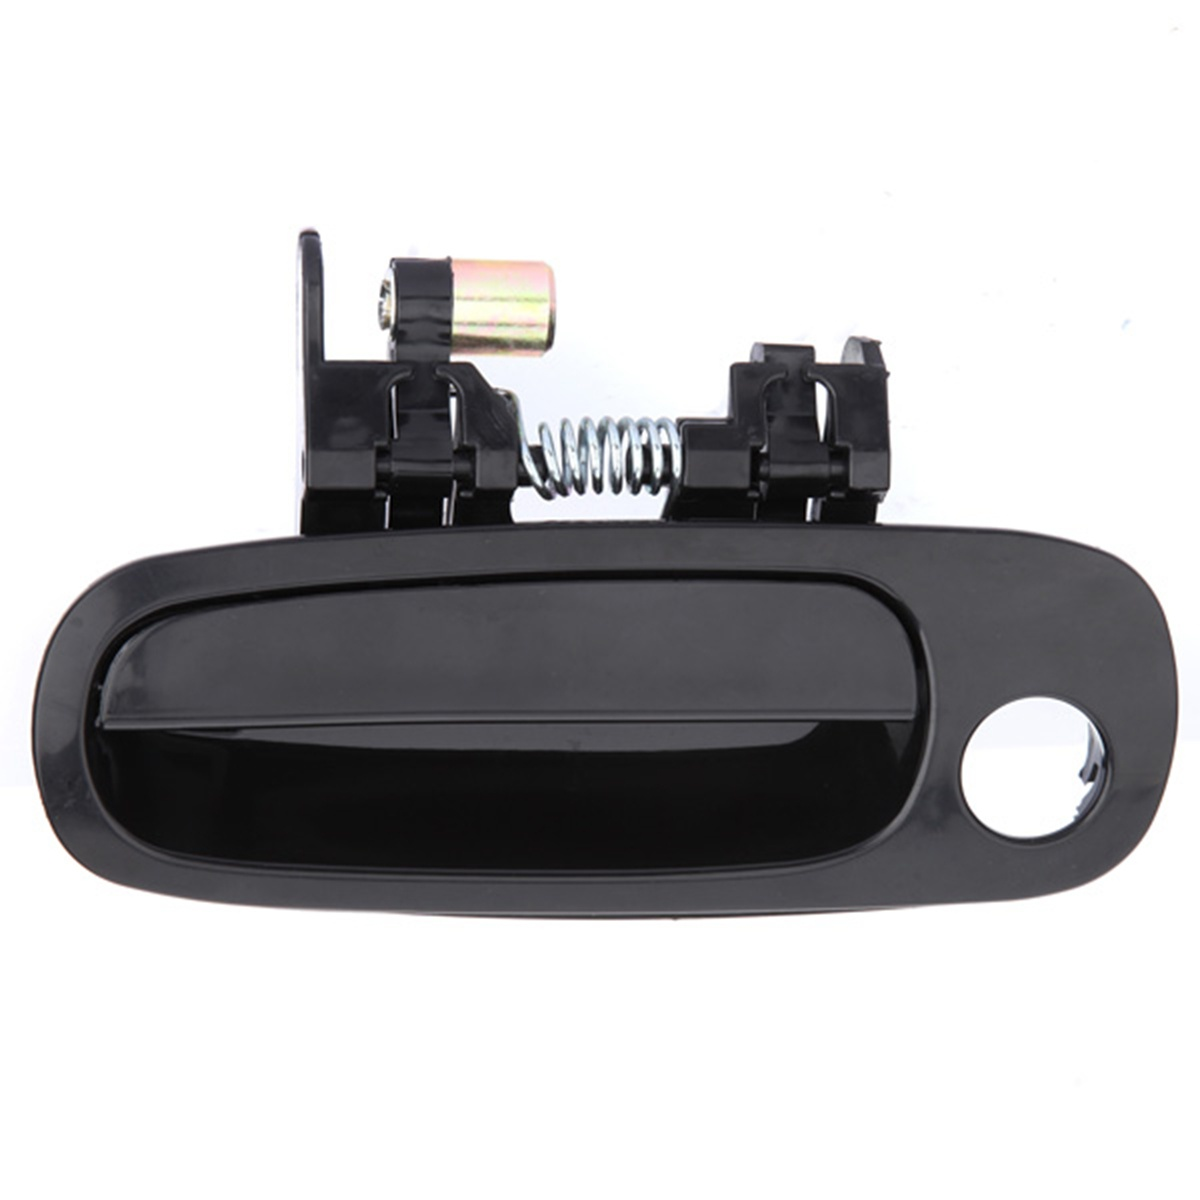 NEW Front Left Driver Side Exterior Textured Door Handle for Toyota Corolla For Chevy Prizm 1998-2002